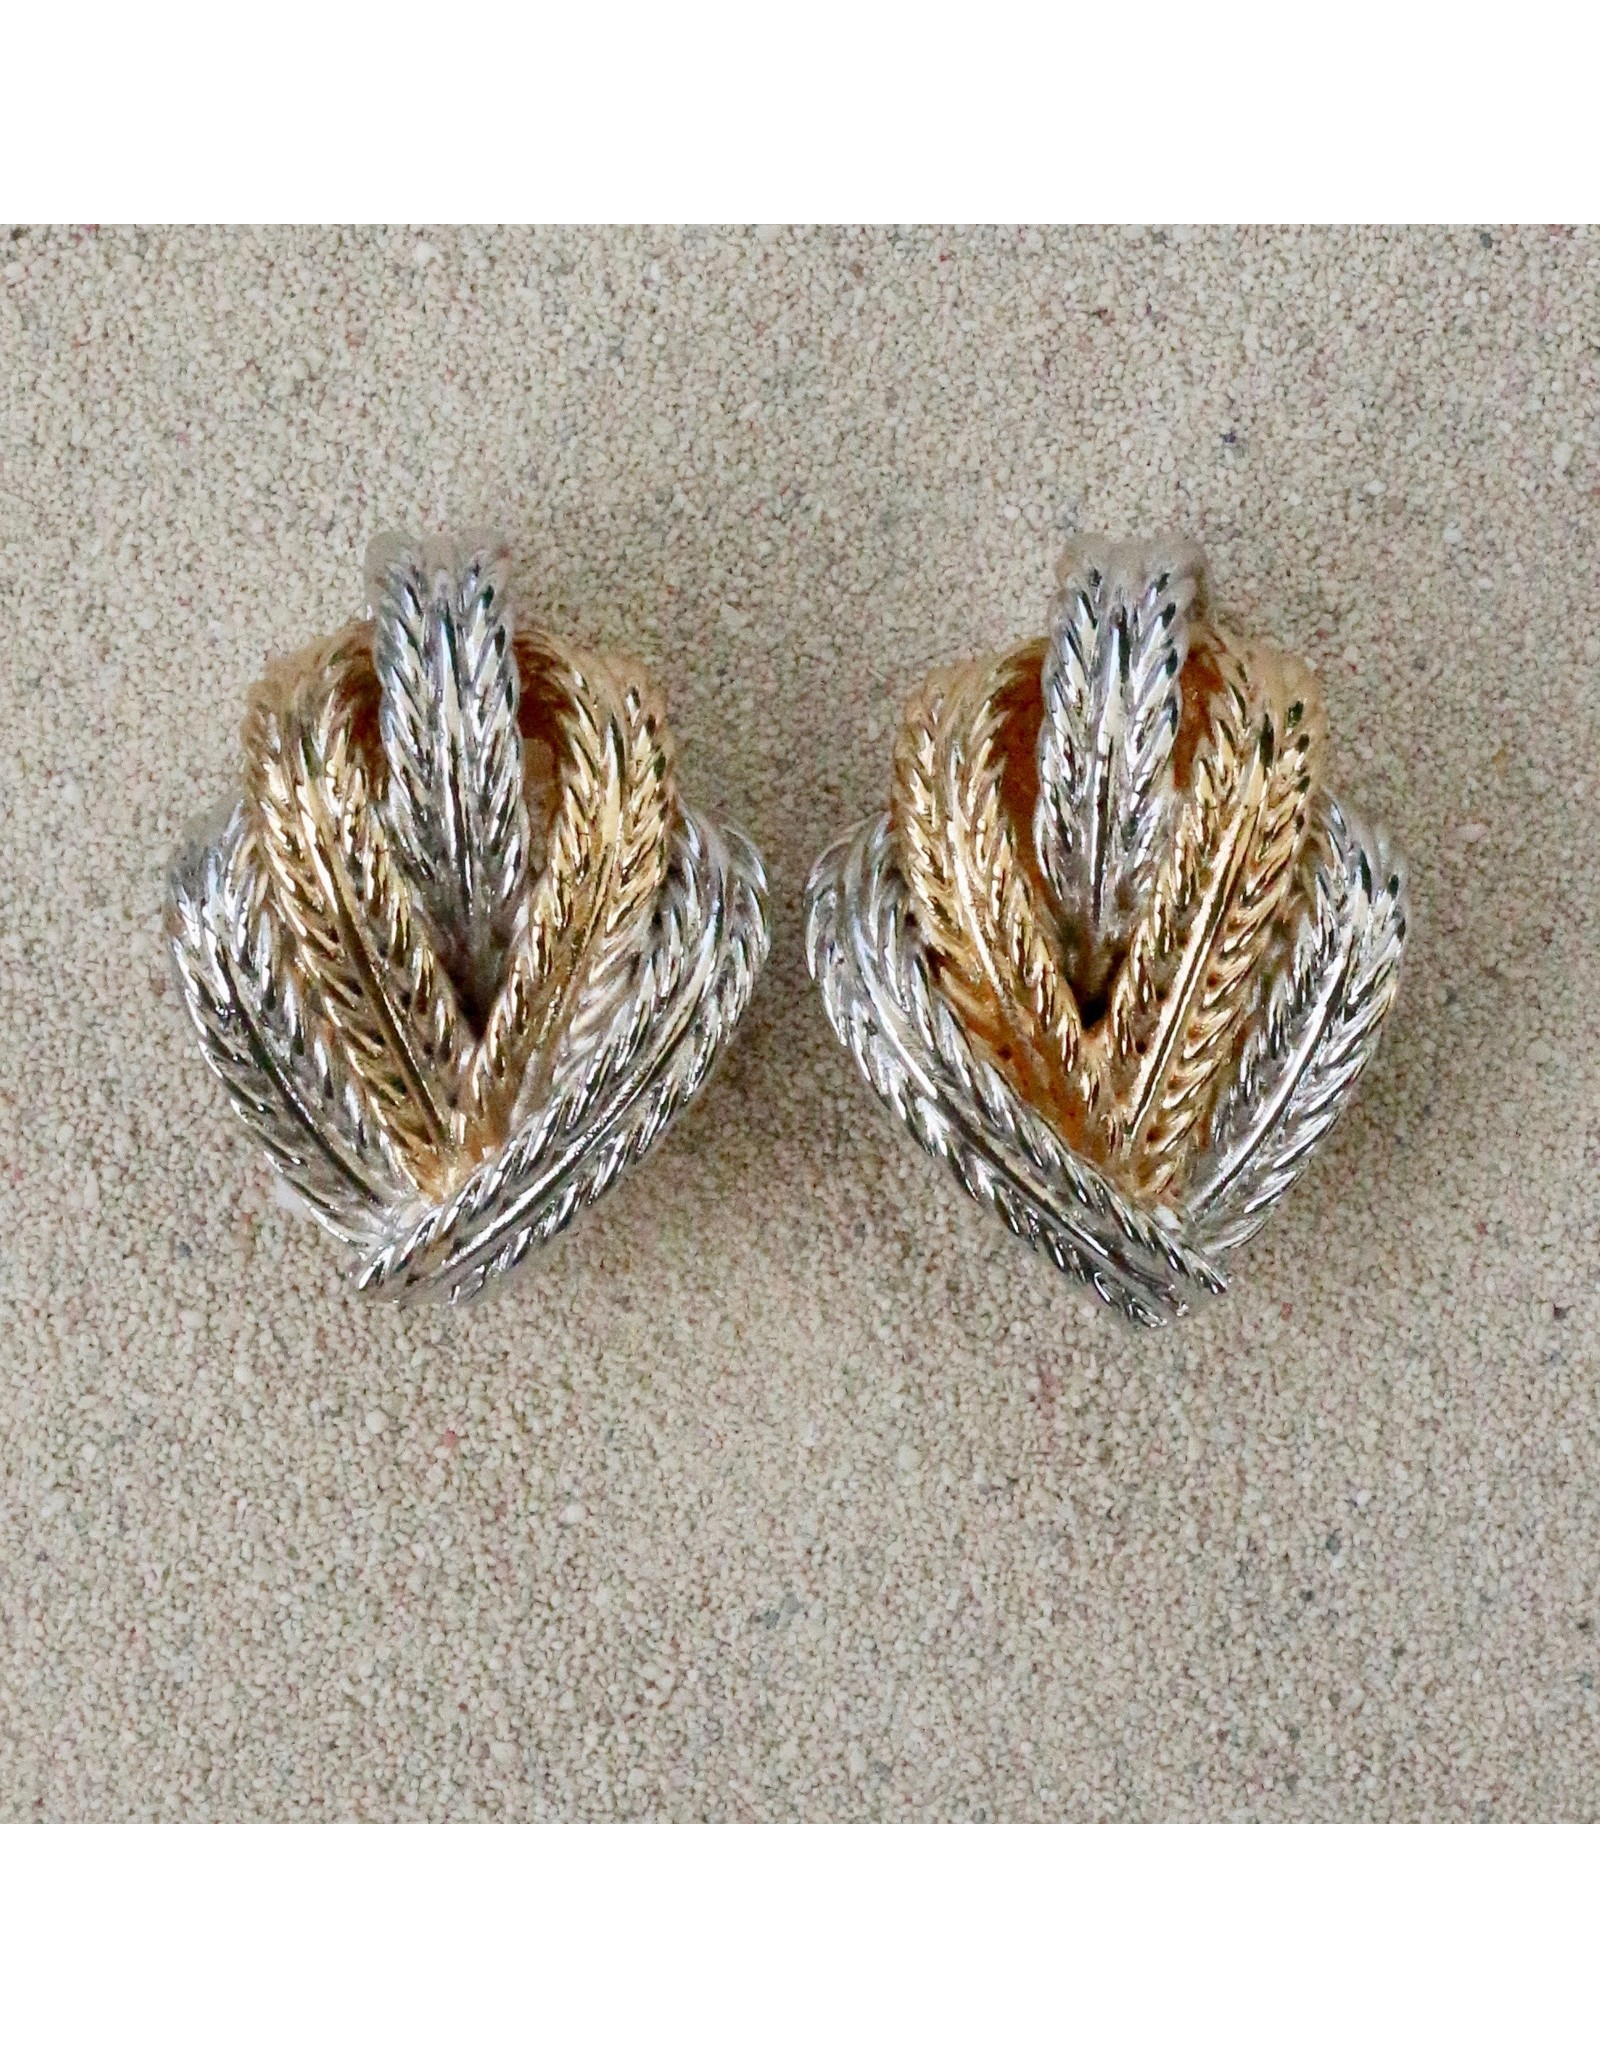 VC Italy VCExclusives: Leaf Fragments Gold & Silver